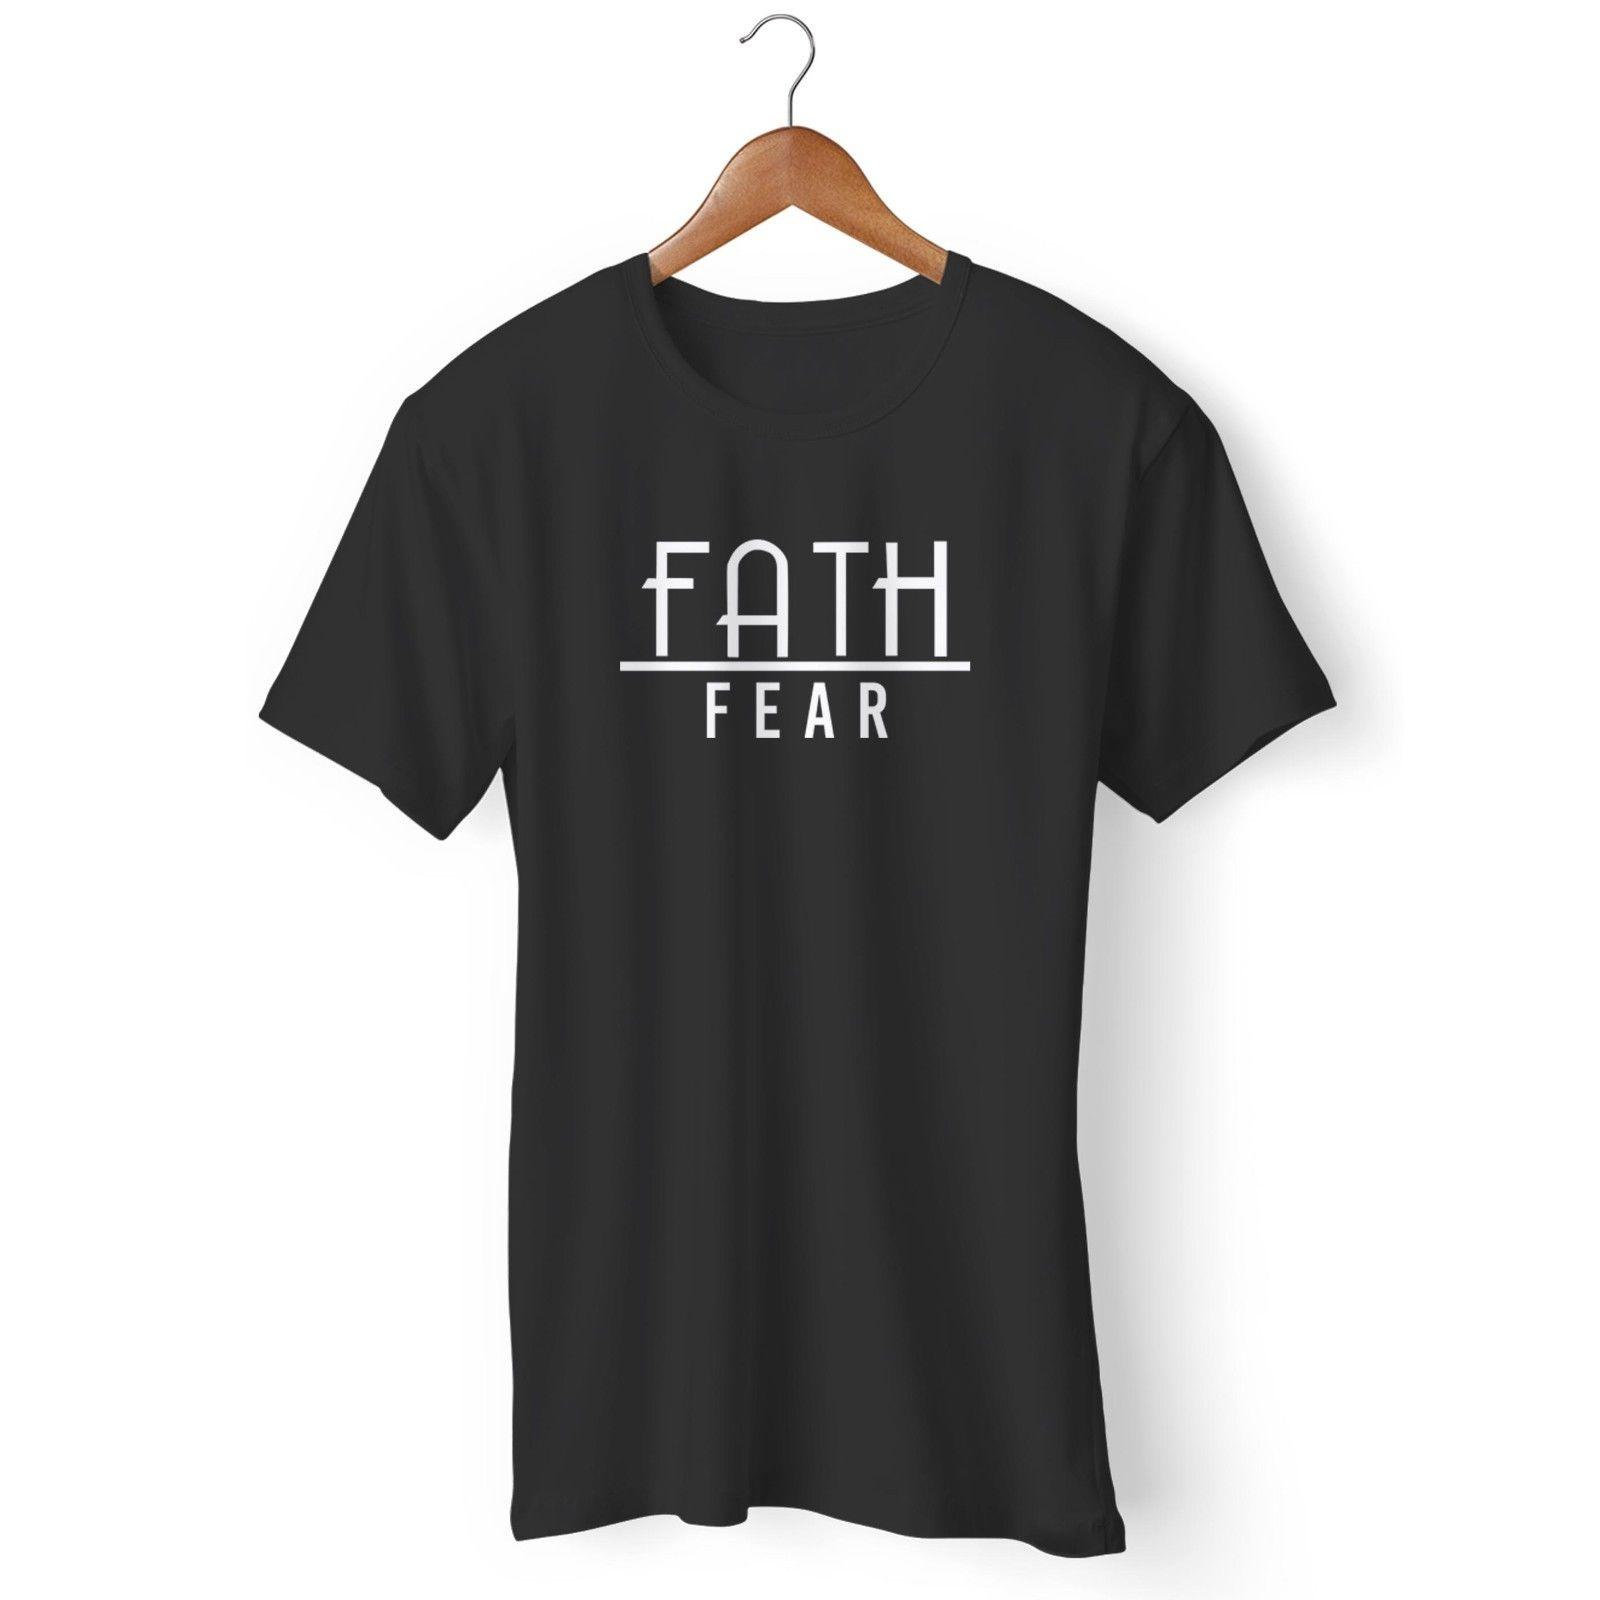 Faith Over Fear Oatmeal Cranberry Christian Man's / Woman's T-Shirt Funny free shipping Tshirt top